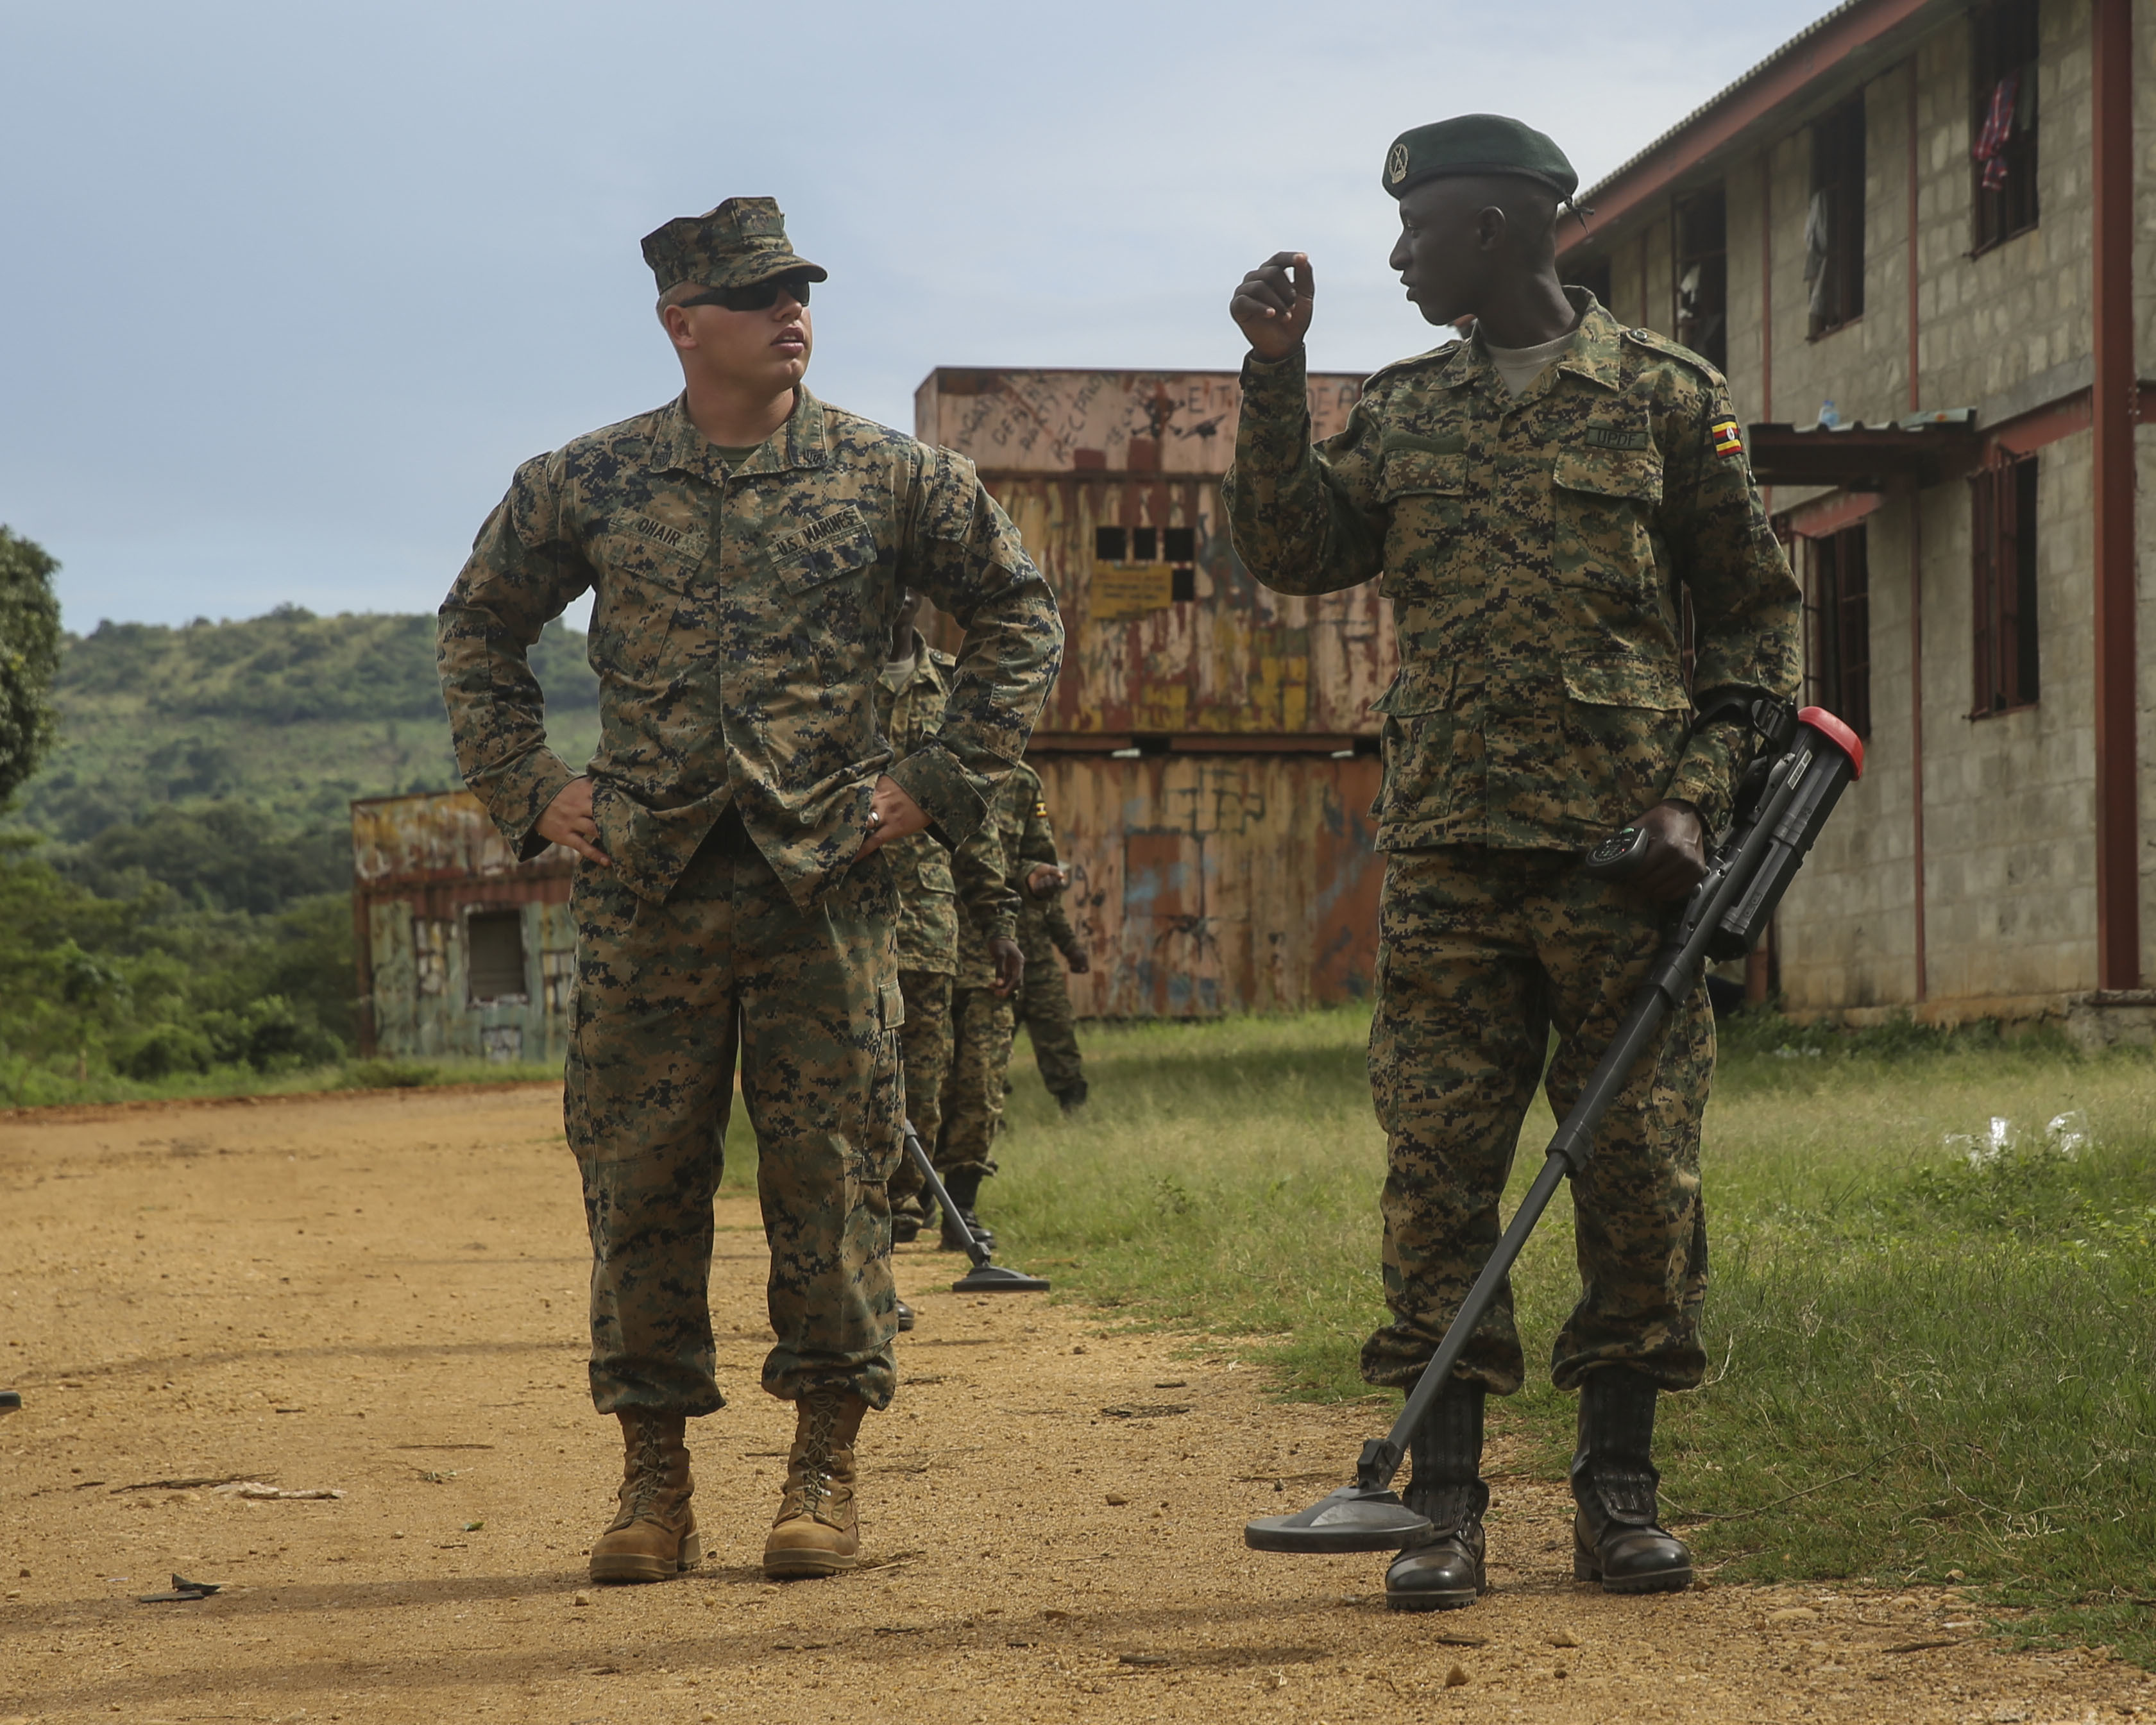 U.S. Marine Sgt. Sean O'Hair, a combat engineer with Special-Purpose Marine Air-Ground Task Force Crisis Response-Africa, helps a member of the Uganda People's Defense Force through an improvised explosive device awareness exercise at Camp Singo, Uganda, Nov. 3, 2015. Marines and sailors with SPMAGTF-CR-AF are training with the UPDF to increase engineering and logistical capabilities while strengthening the bonds between the partner counties. (U.S. Marine Corps photo by Cpl. Olivia McDonald/Released)